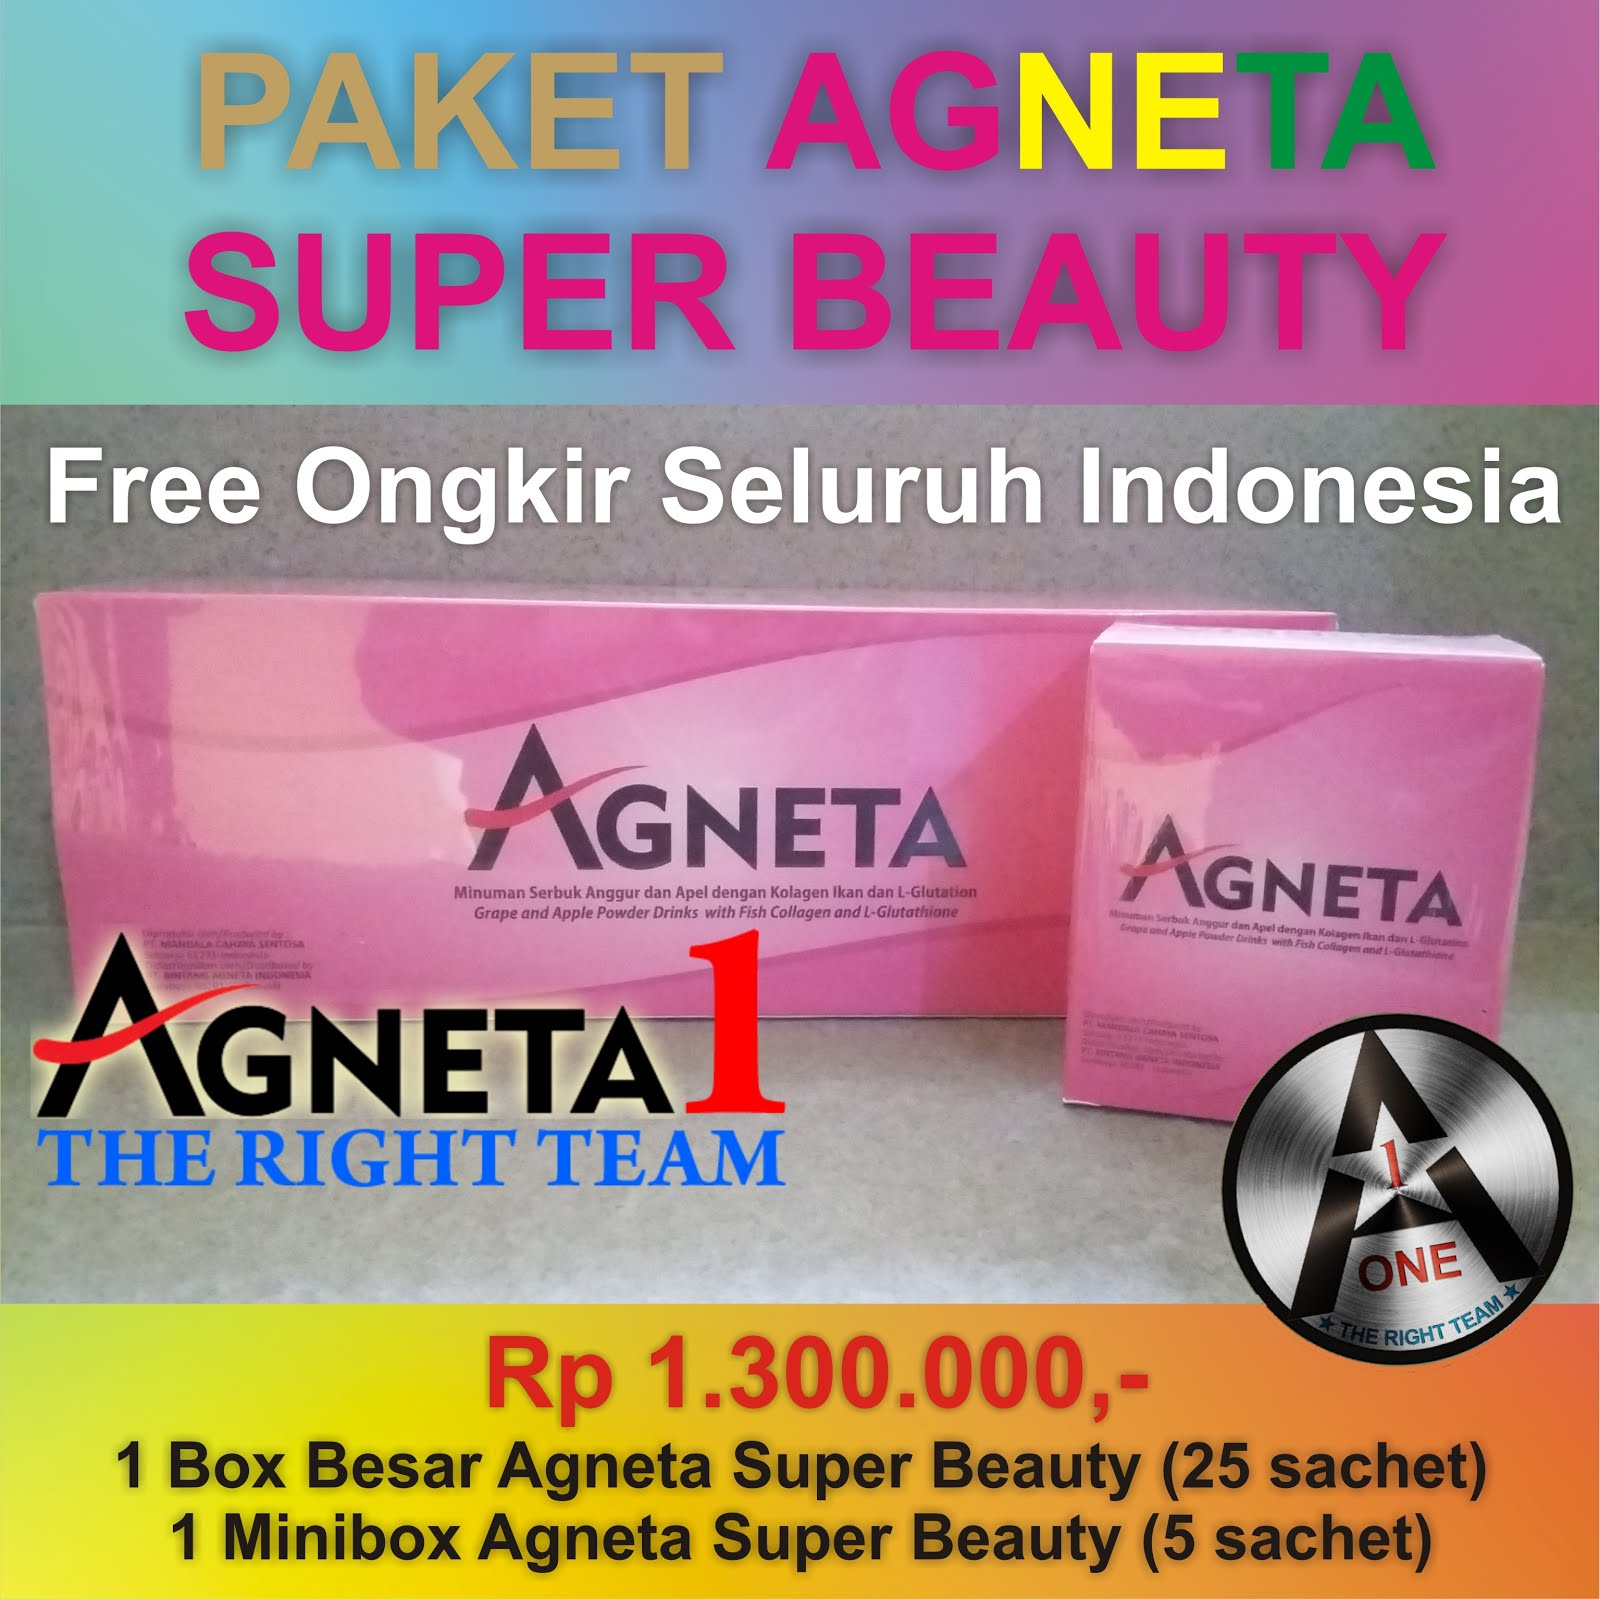 Paket Agneta Super Beauty (Anti Aging)